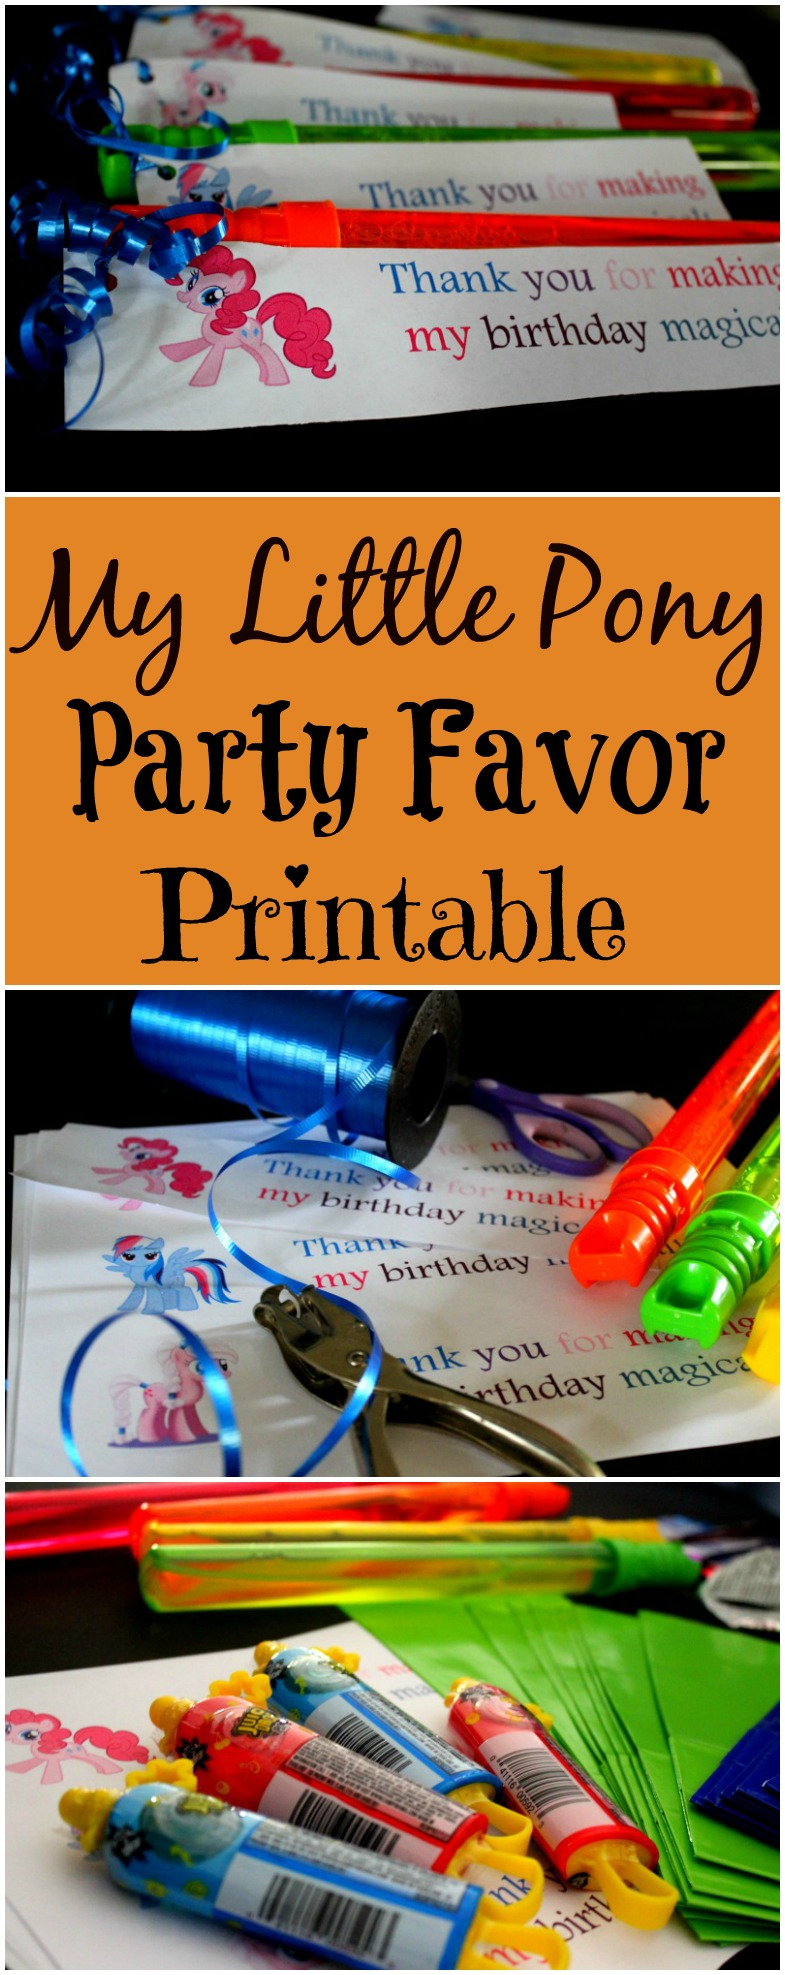 My Little Pony Party Favor Printable